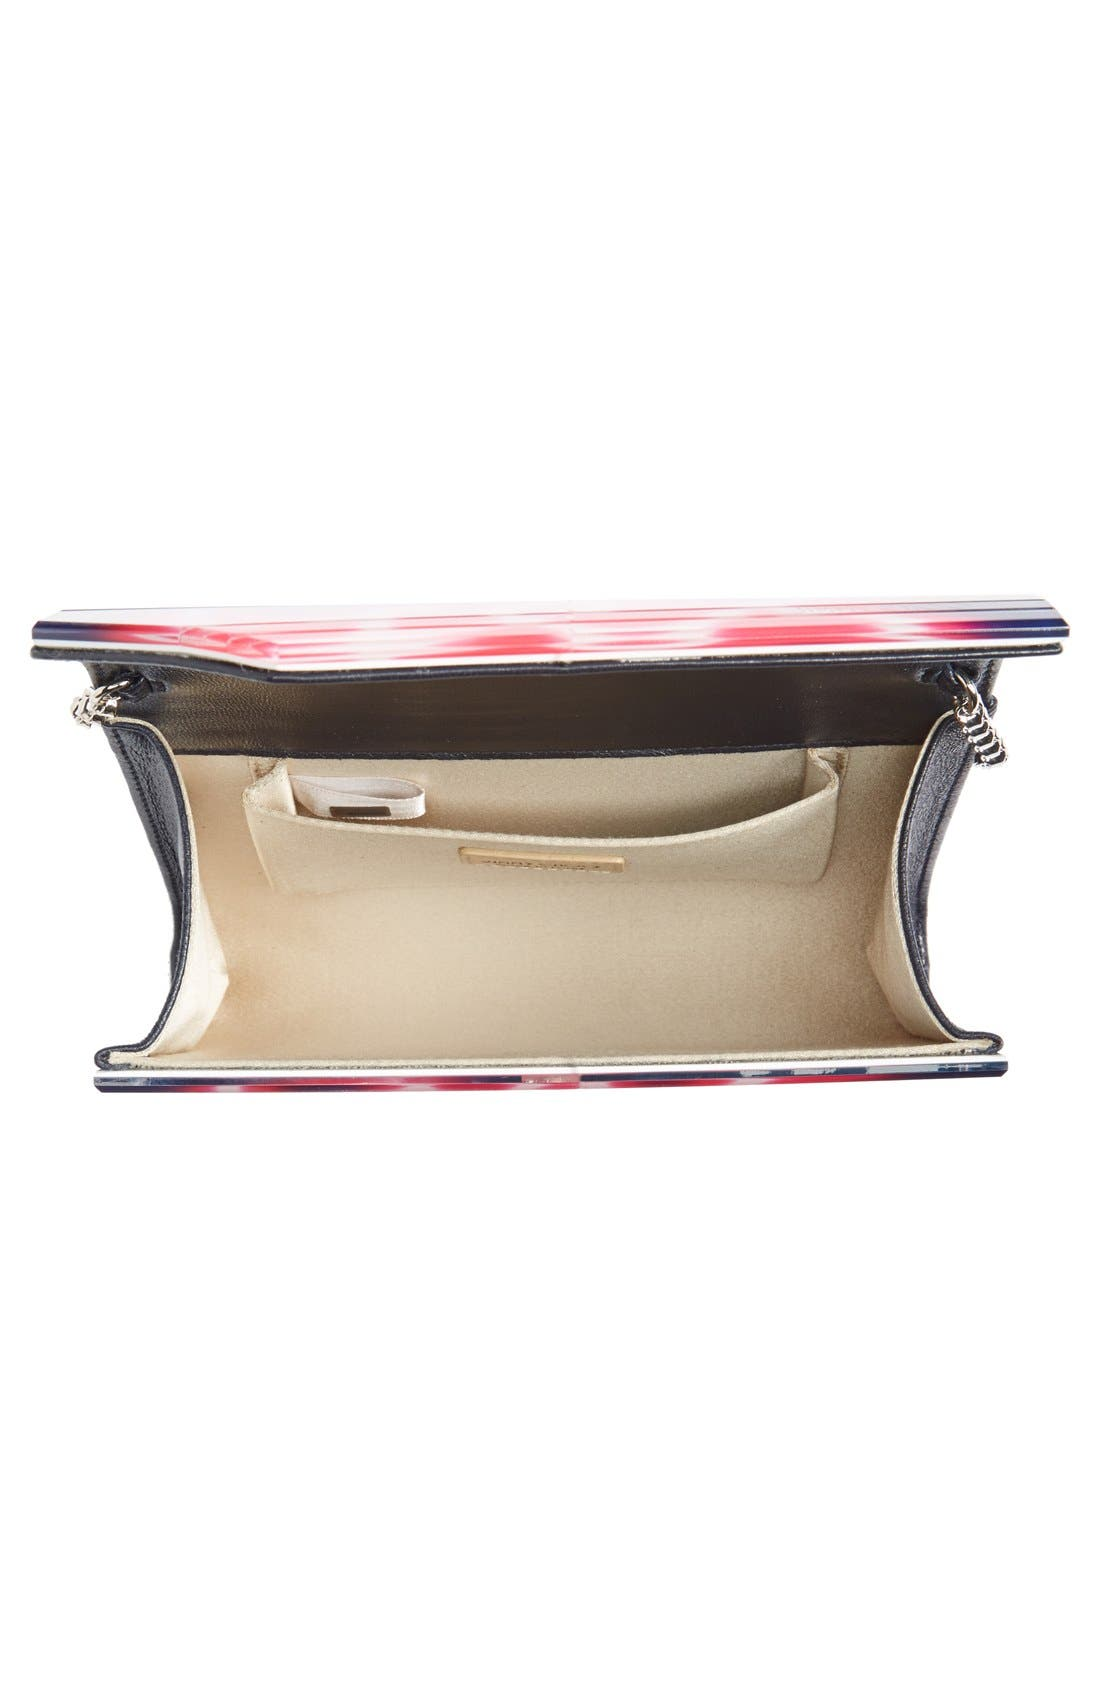 JIMMY CHOO,                             'Candy' Clutch,                             Alternate thumbnail 6, color,                             400